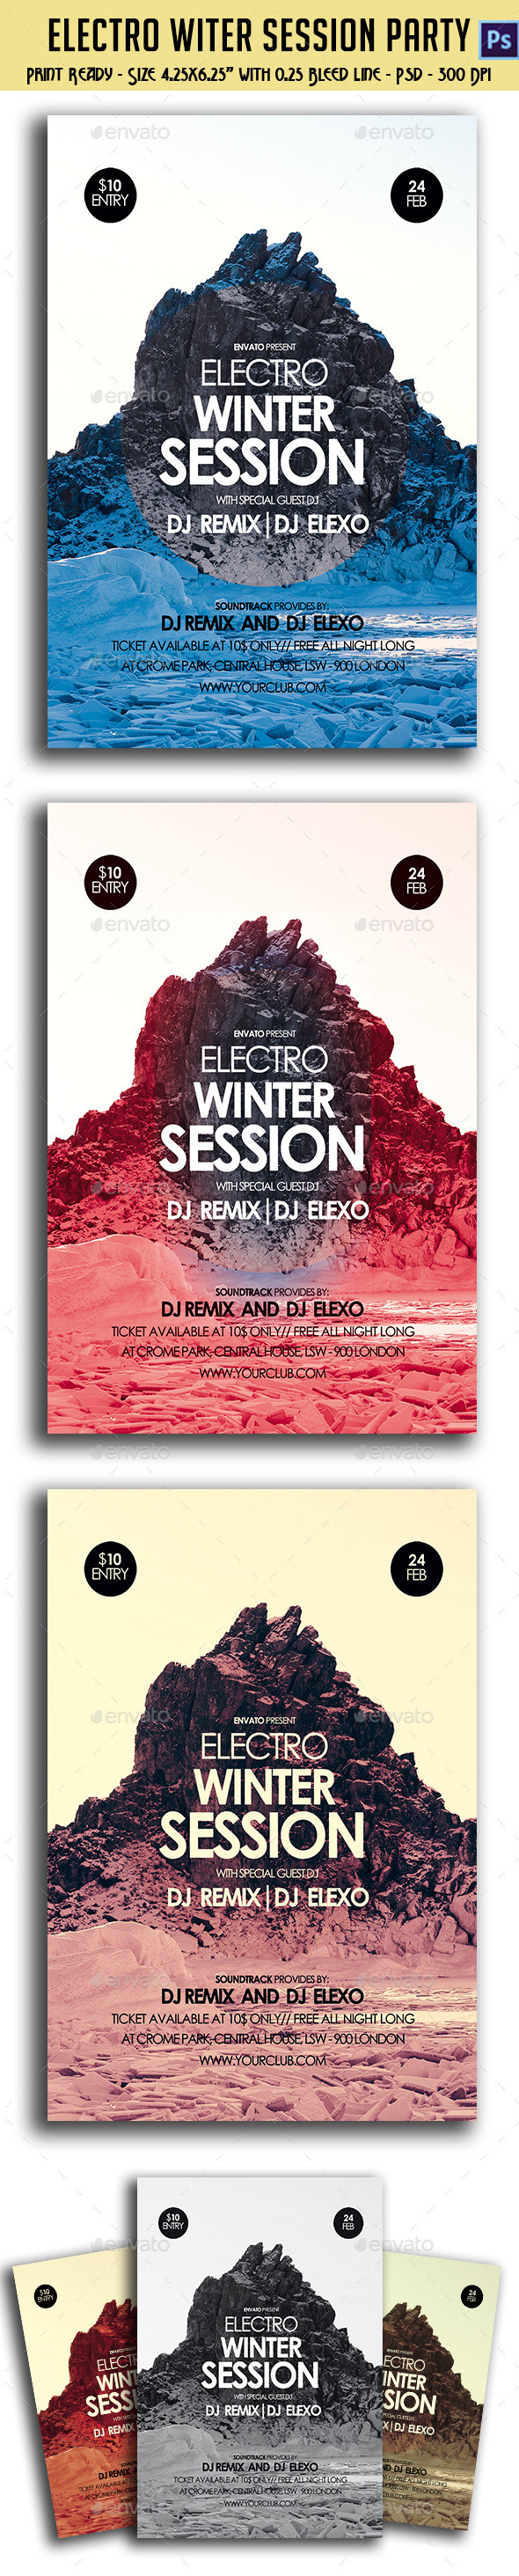 GraphicRiver Electronic Winter Session Party Flyer 10236445